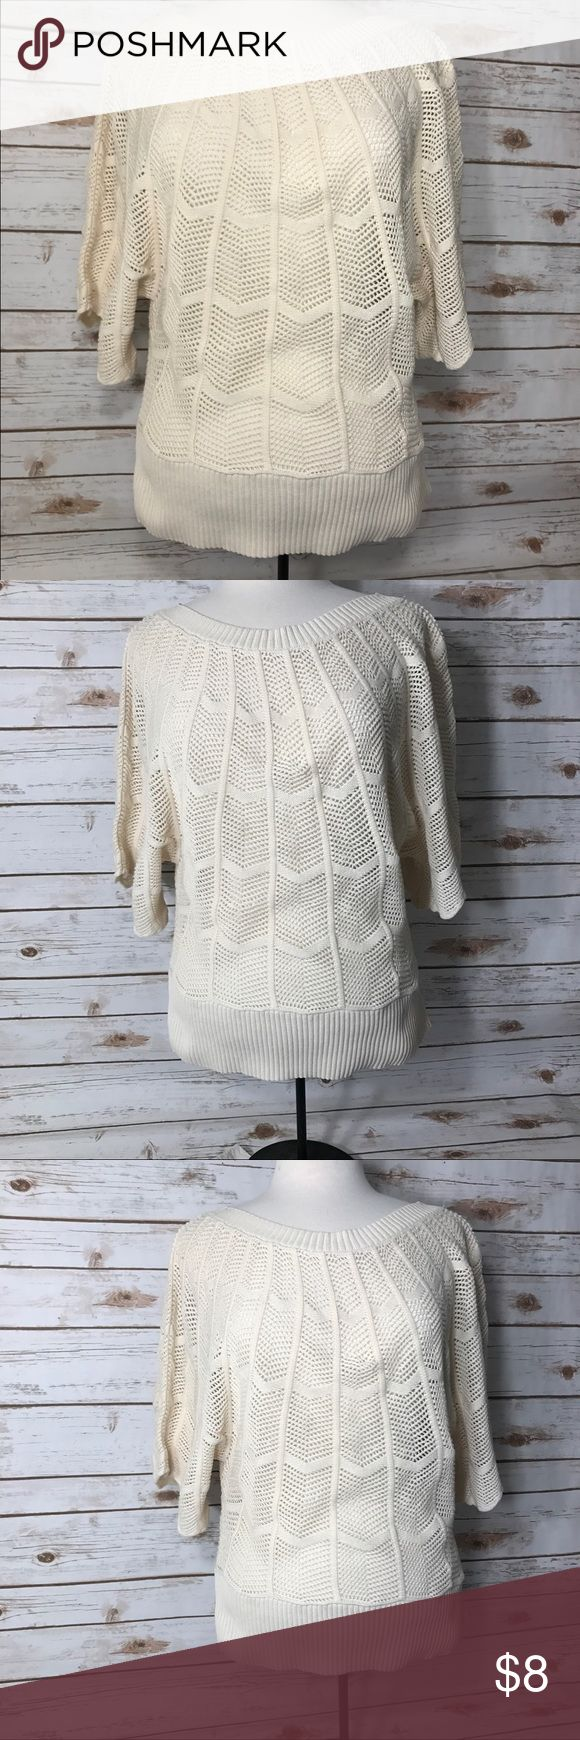 "Anne Taylor Loft crochet sweater Cream Anne Taylor Loft long Bat winged sleeve crochet sweater. Size medium good condition. Measurements for flat lay: Shoulder to Shoulder (11.5"") Armpit toArmpit (17"") Top to Bottom (23.5"") anne taylor loft Tops Sweatshirts & Hoodies"